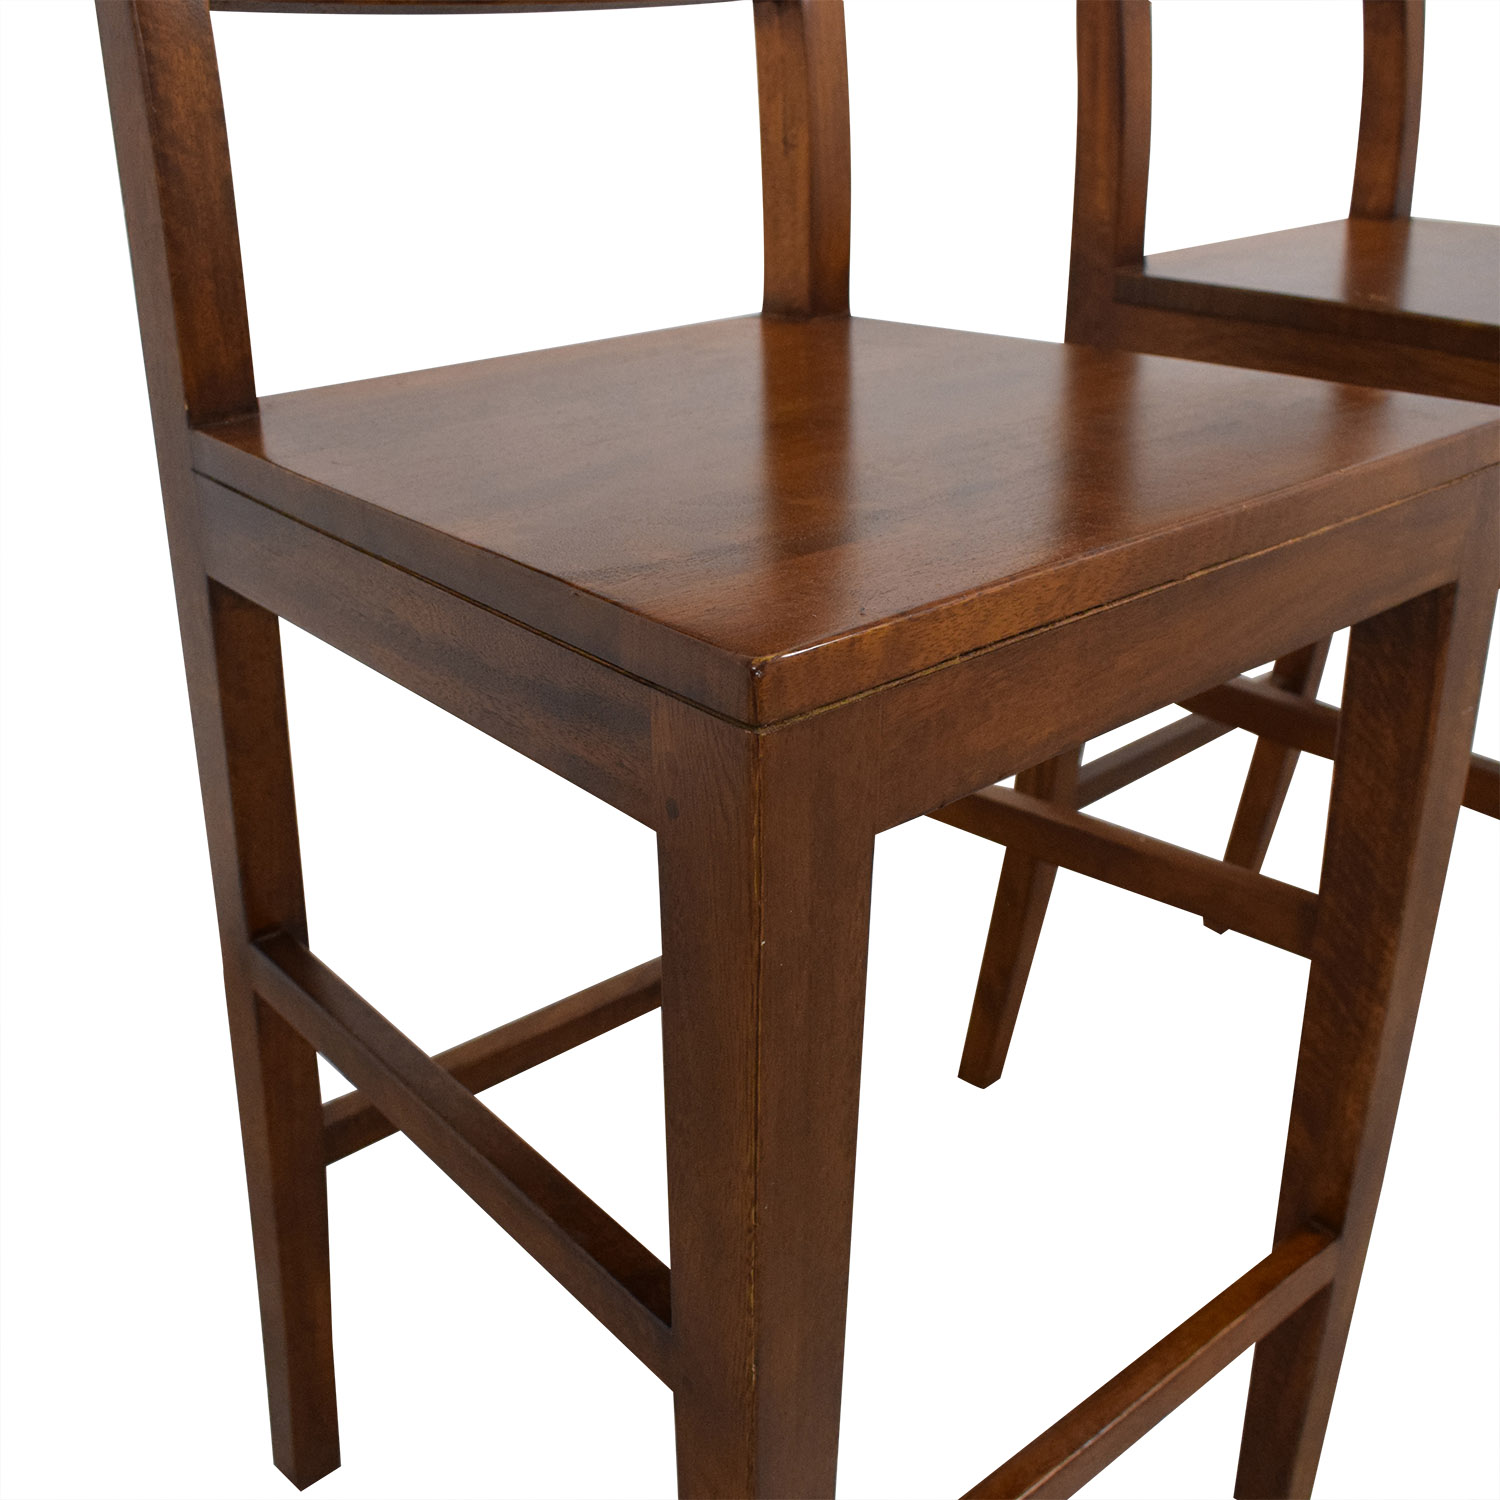 buy Crate & Barrel Crate and Barrel Counter Stools online